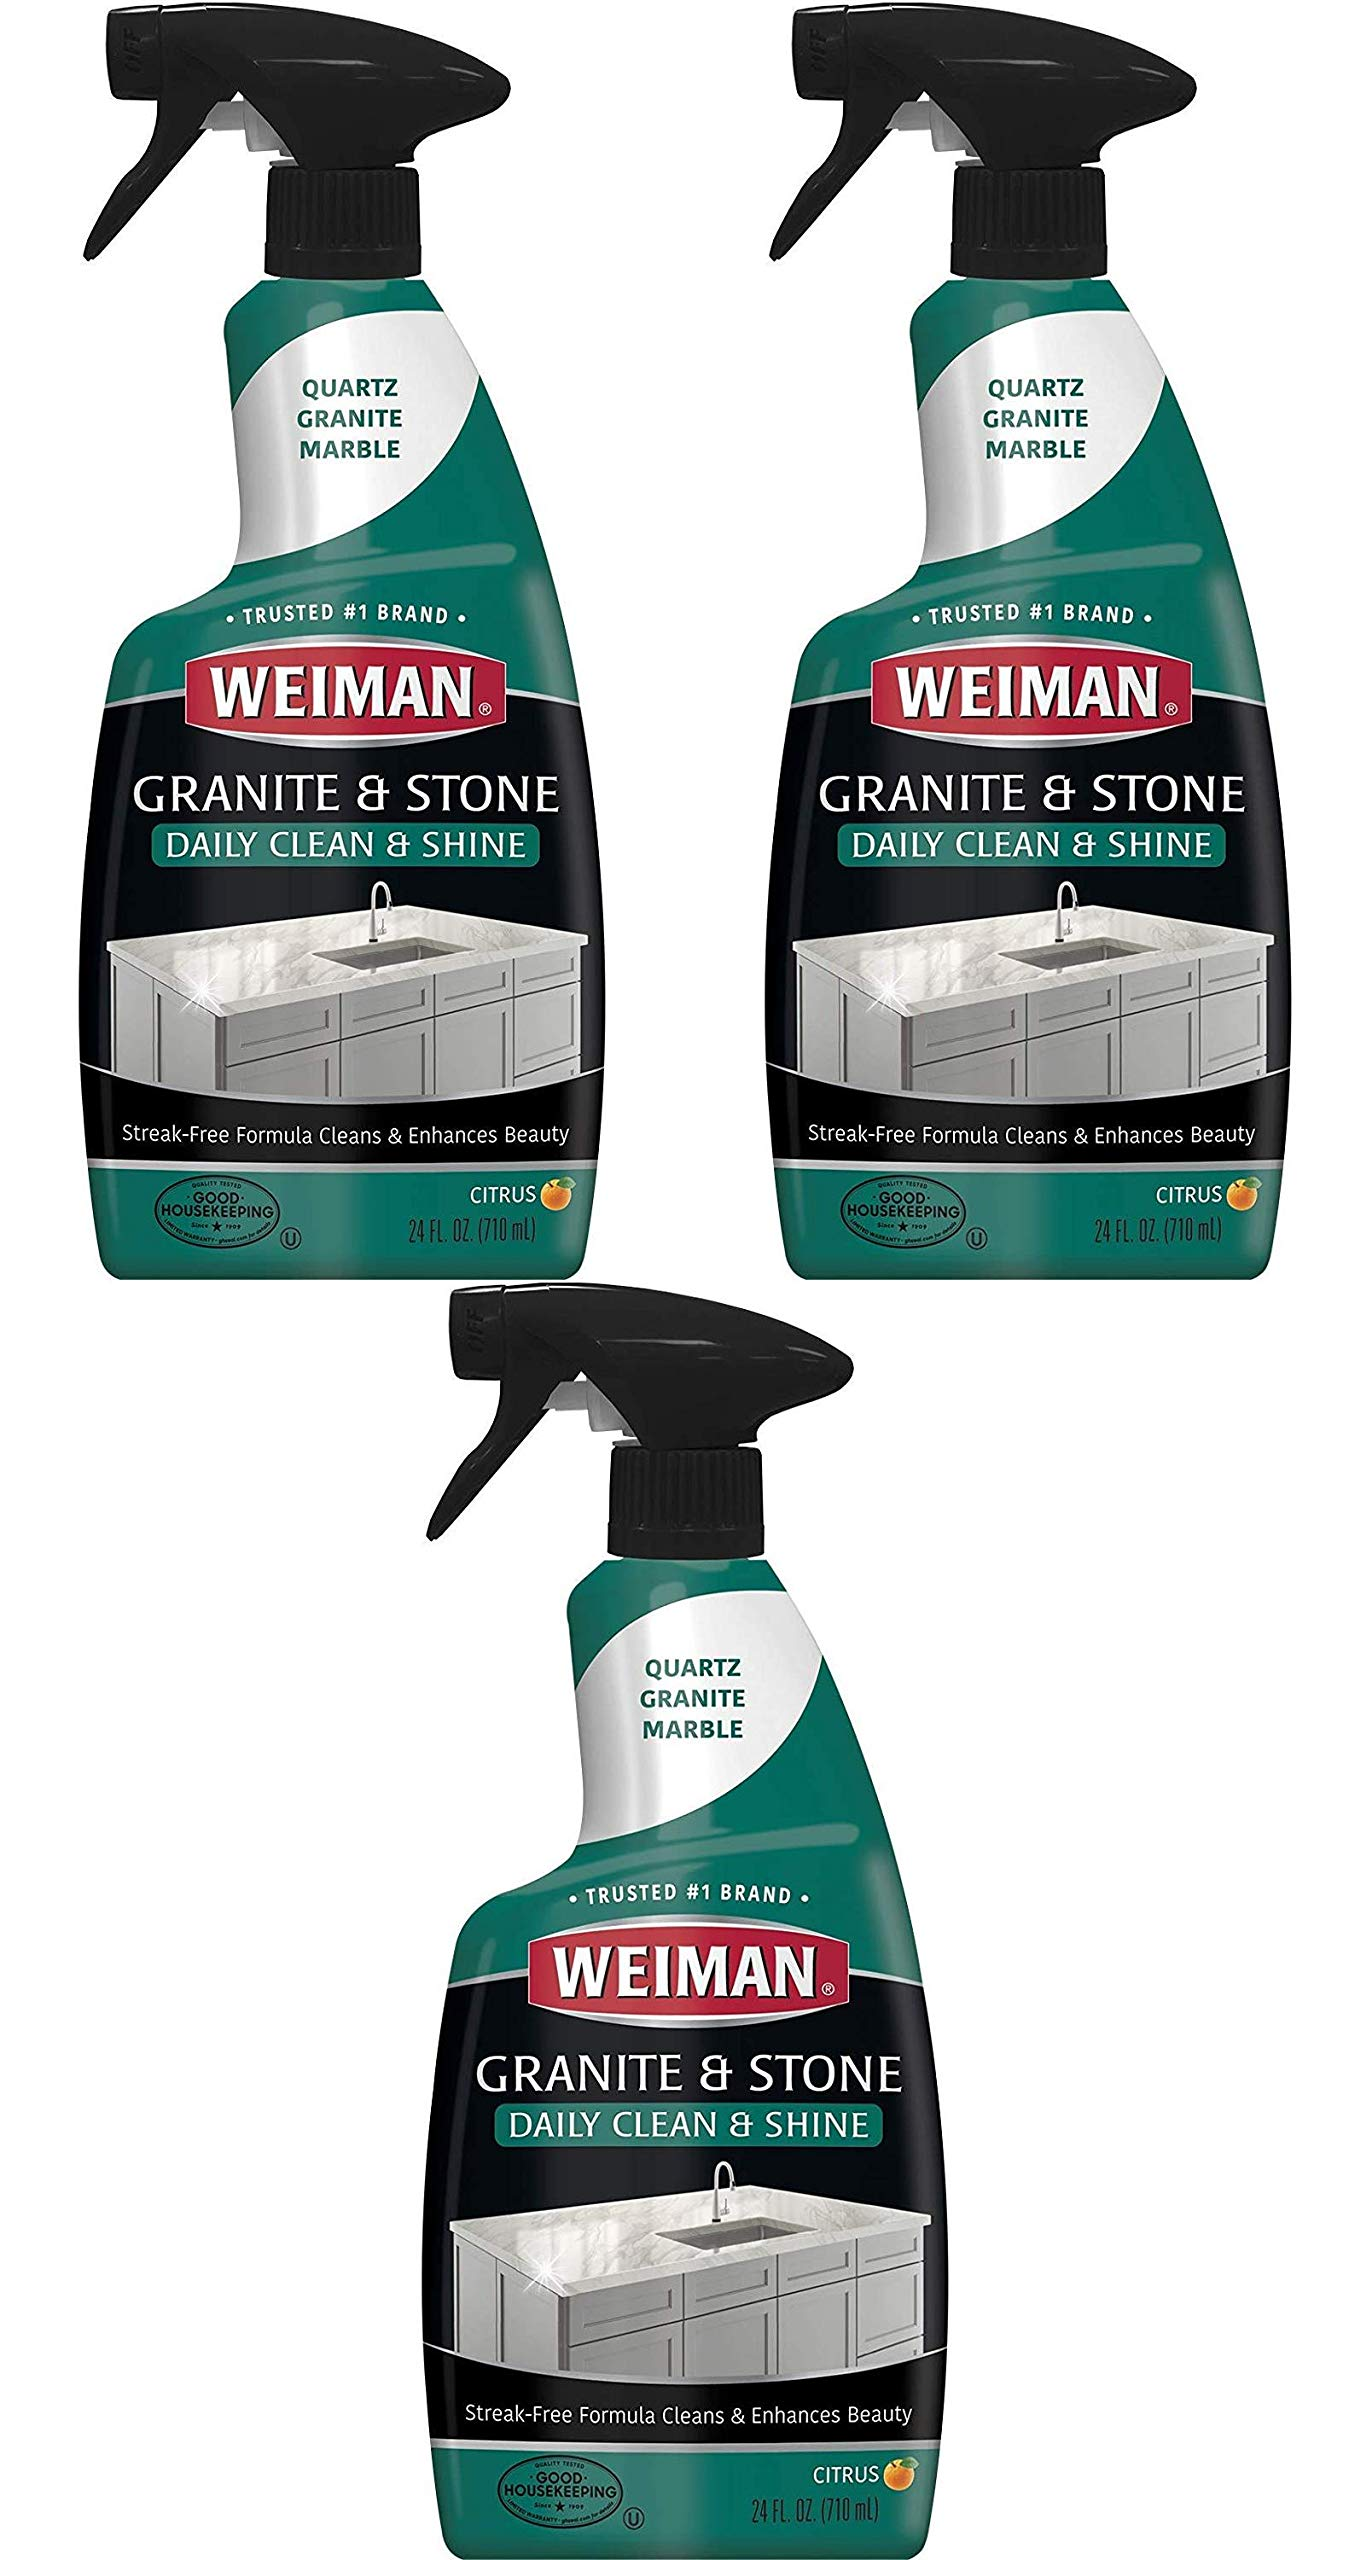 Weiman Granite Cleaner and Polish for Daily Use, Streak-Free Formula for Countertops, Marble, Quartz, Laminate, and Tile (24 Ounce) Pack of 3 by Weiman